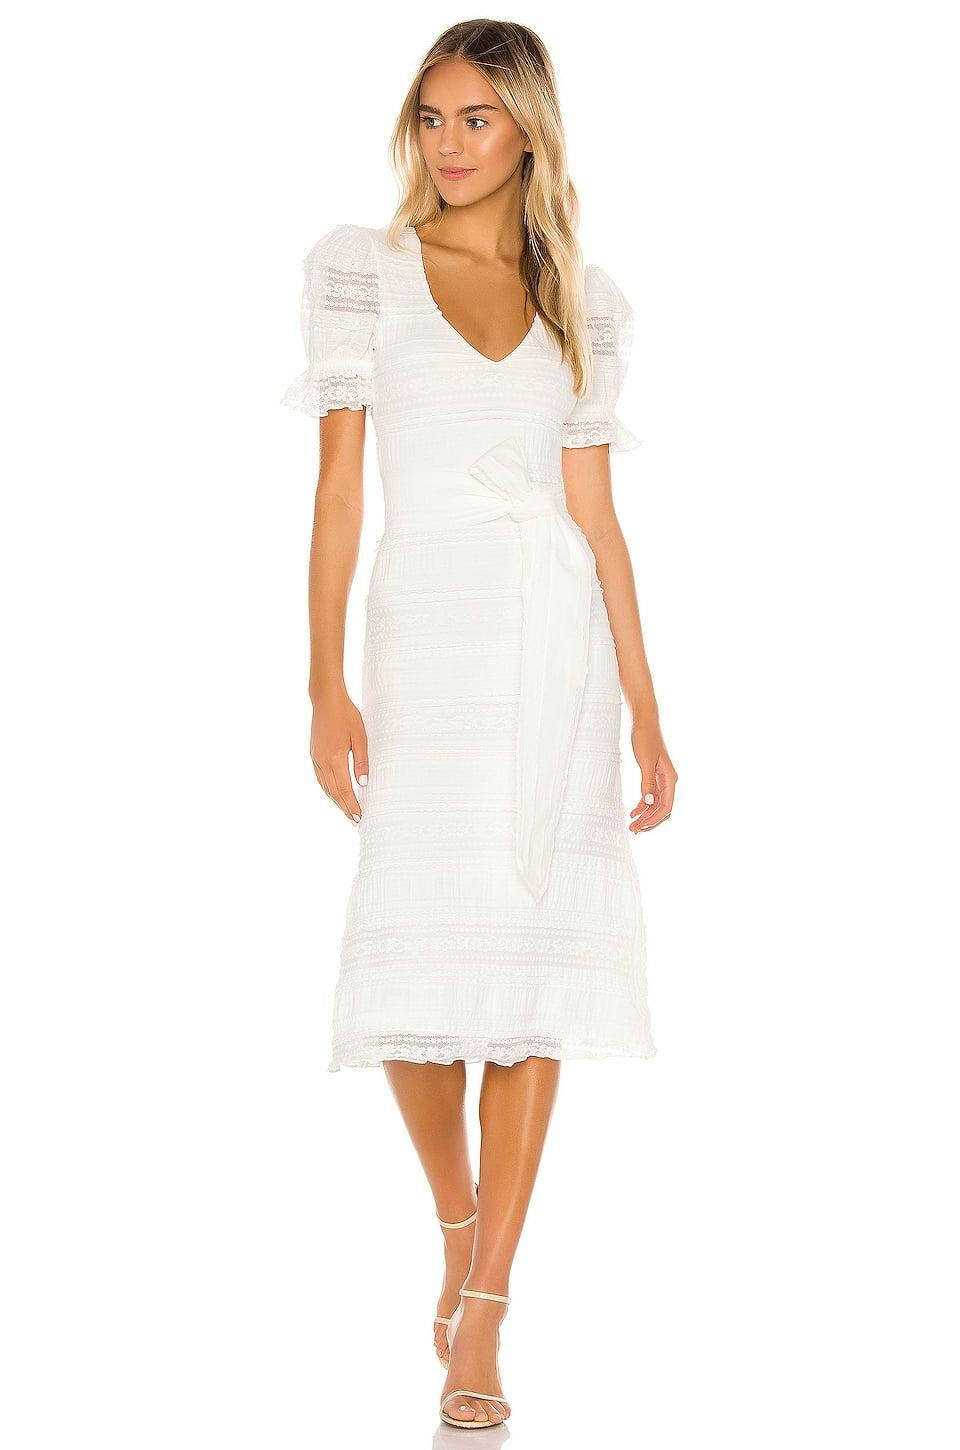 """<p>This <a href=""""https://www.popsugar.com/buy/Tularosa-Quinn-Midi-Dress-579968?p_name=Tularosa%20Quinn%20Midi%20Dress&retailer=revolve.com&pid=579968&price=168&evar1=fab%3Aus&evar9=33517892&evar98=https%3A%2F%2Fwww.popsugar.com%2Ffashion%2Fphoto-gallery%2F33517892%2Fimage%2F47532439%2FTularosa-Quinn-Midi-Dress&list1=shopping%2Csummer%2Clace%2Csummer%20fashion&prop13=api&pdata=1"""" class=""""link rapid-noclick-resp"""" rel=""""nofollow noopener"""" target=""""_blank"""" data-ylk=""""slk:Tularosa Quinn Midi Dress"""">Tularosa Quinn Midi Dress</a> ($168) is one you're always going to want to wear. </p>"""